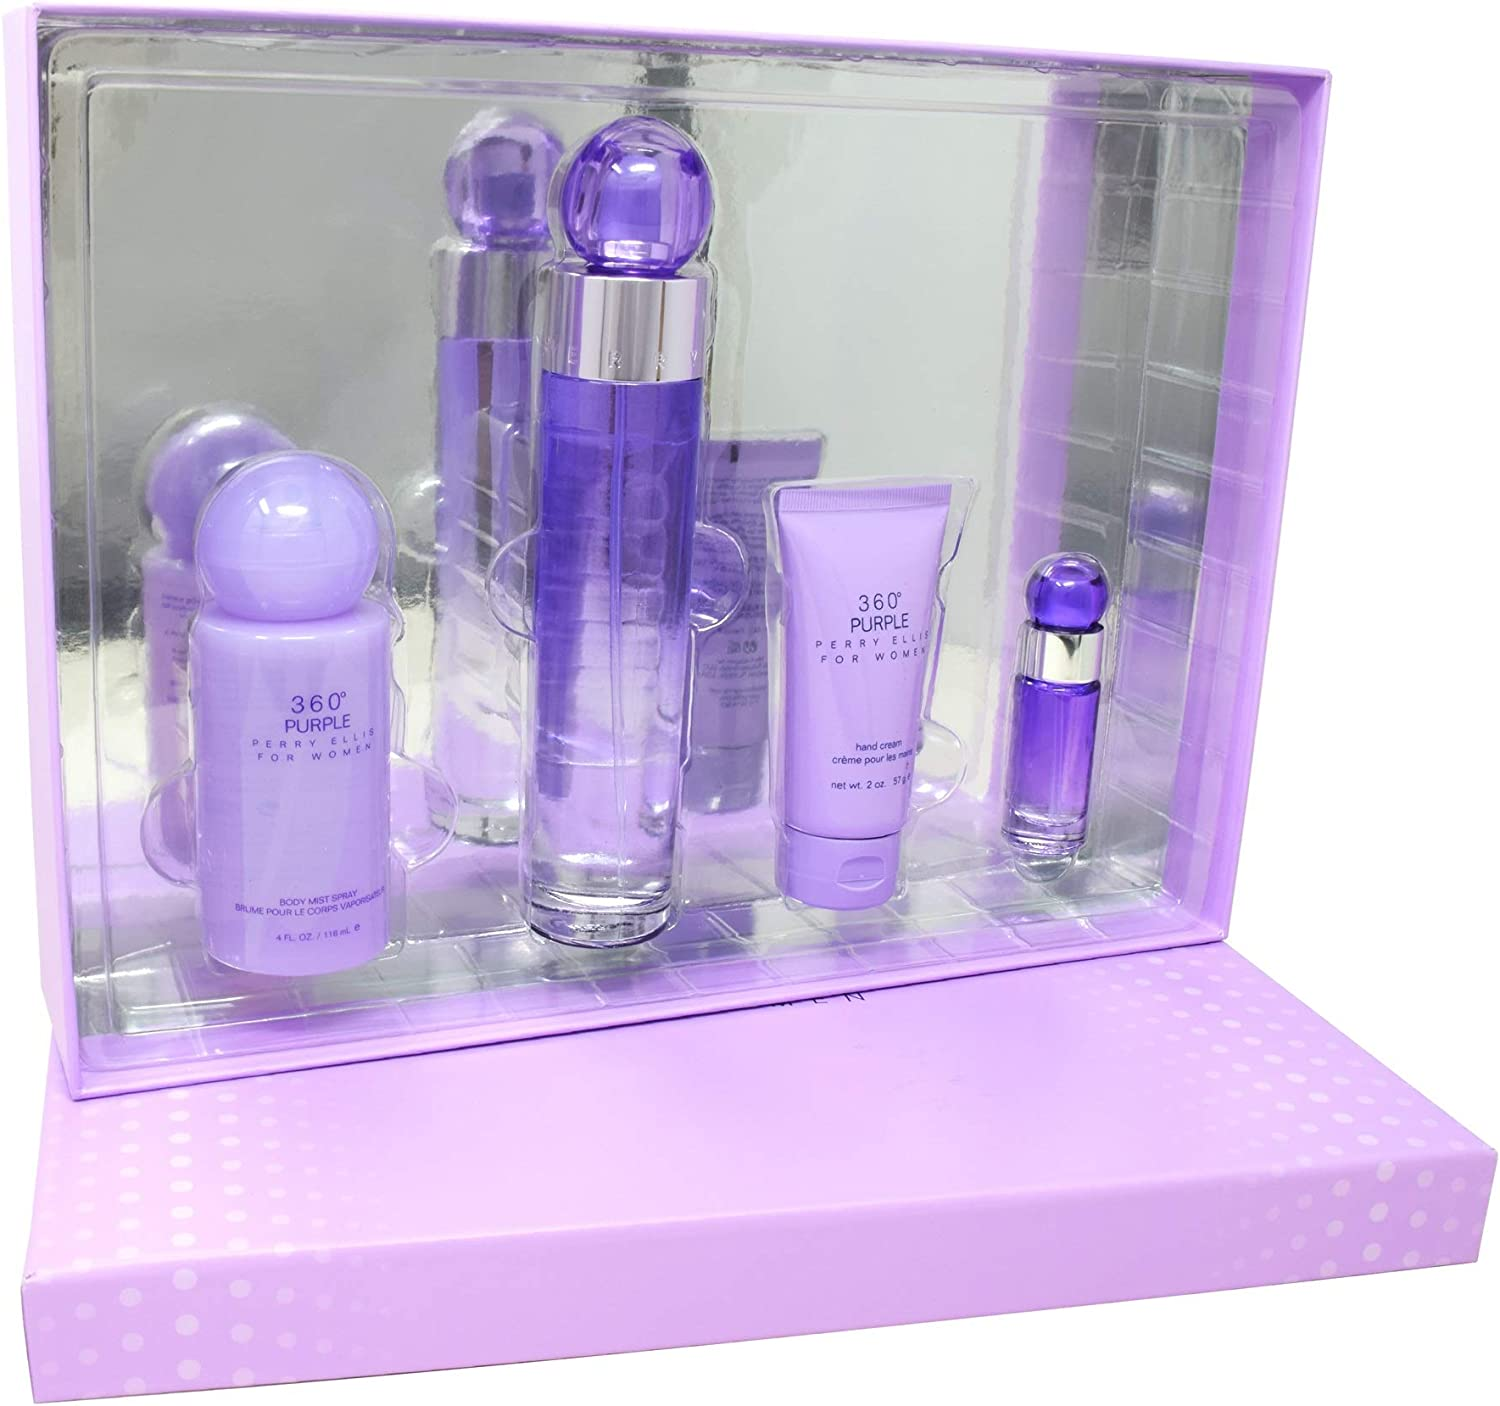 Perry Ellis 360 Purple by Perry Ellis Gift Set 3.4 oz Eau De Parfum Spray + .25 oz Mini EDP Spray + 2 oz Hand Cream + 4 oz Body Spray (Women)